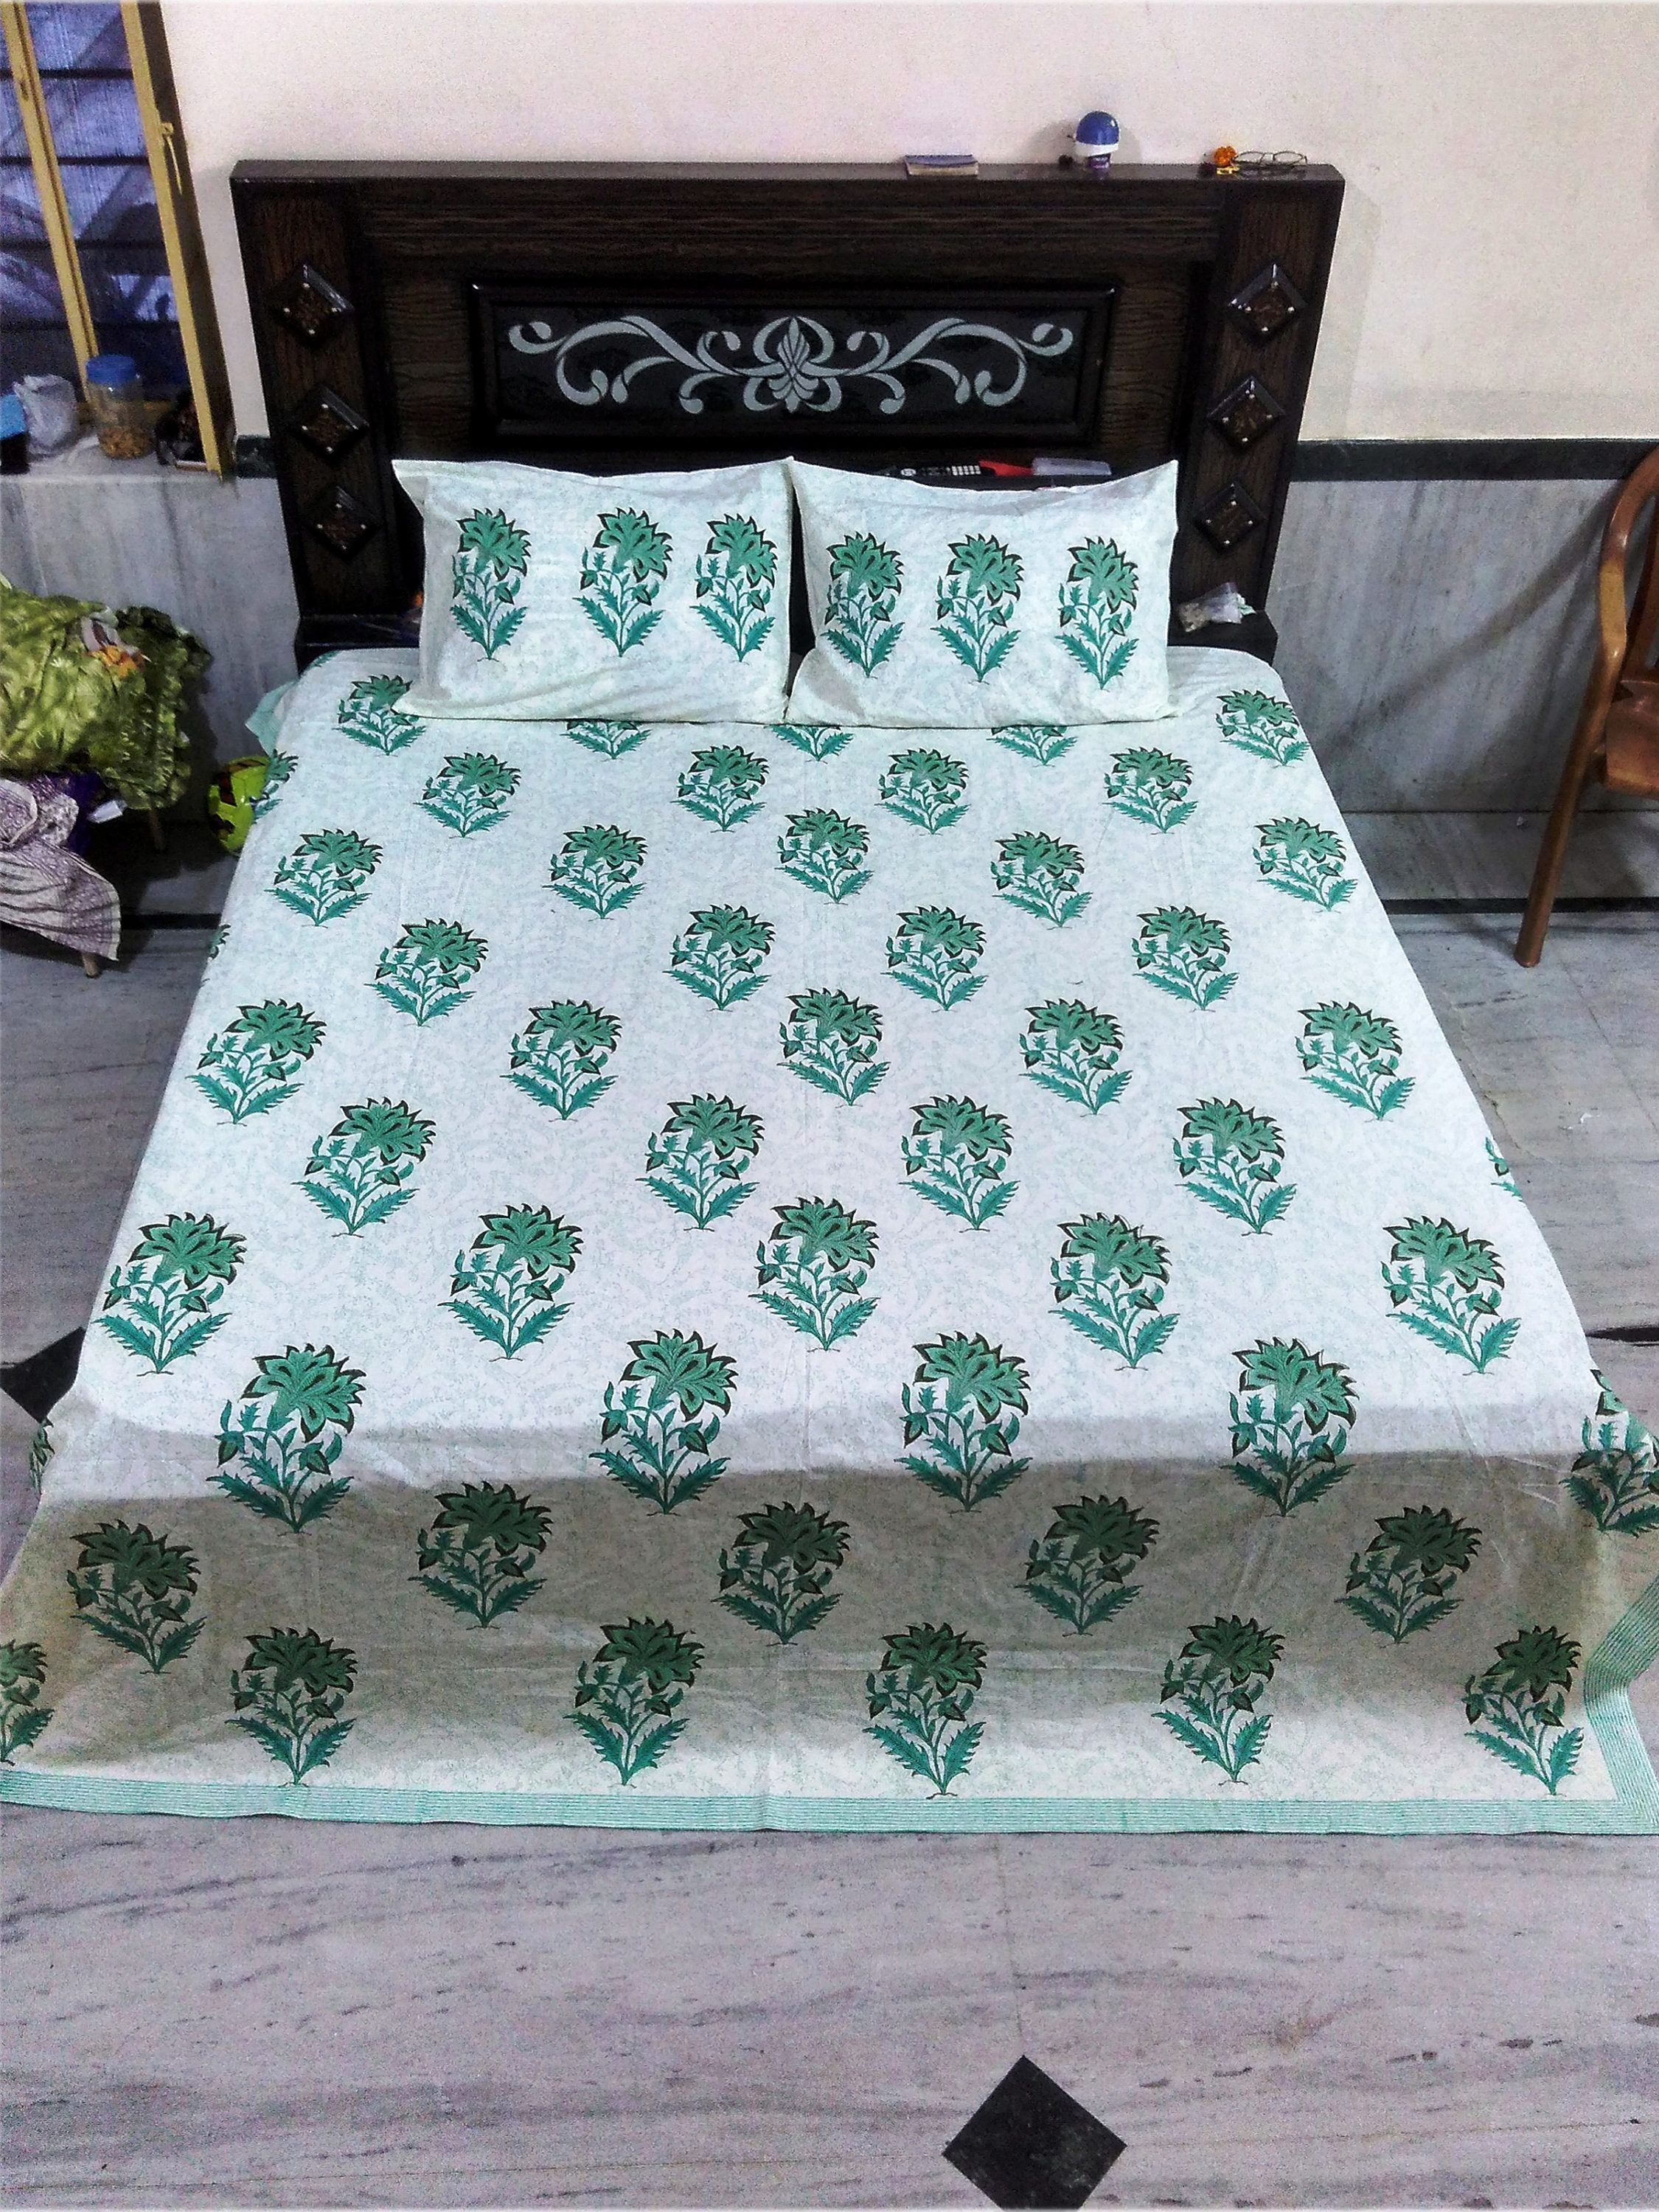 ae9a29aaa7 Natural Cotton Flat Bed Sheet Bedroom Decor, Hand Block Printed, King Size, Double  Bed Sheet, Soft Cotton Bed Sheet, Pillow Cases